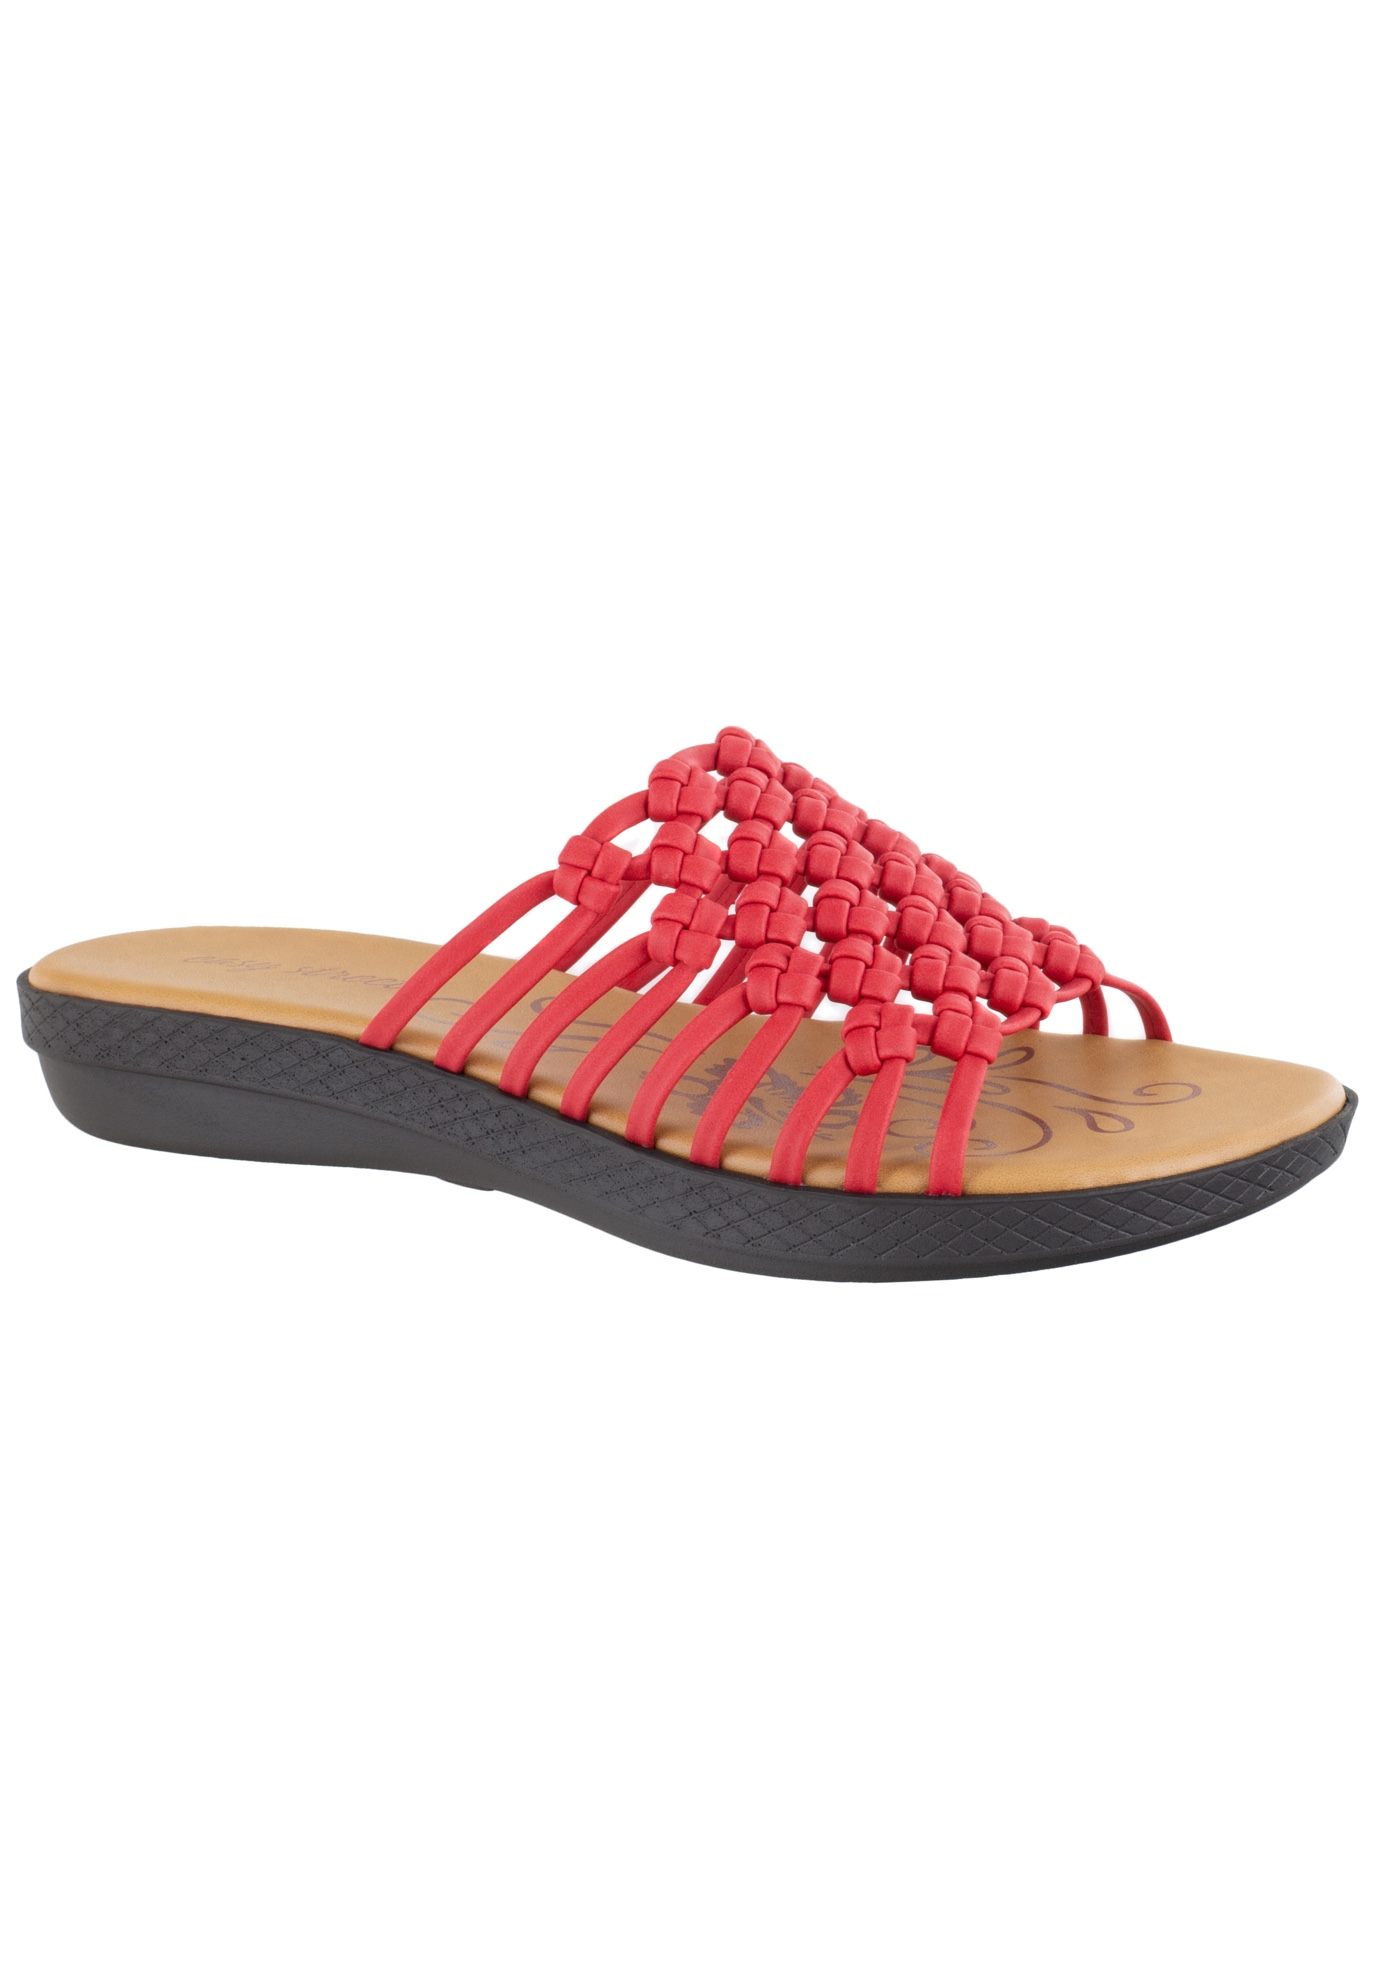 Sing Sandals by Easy Street,